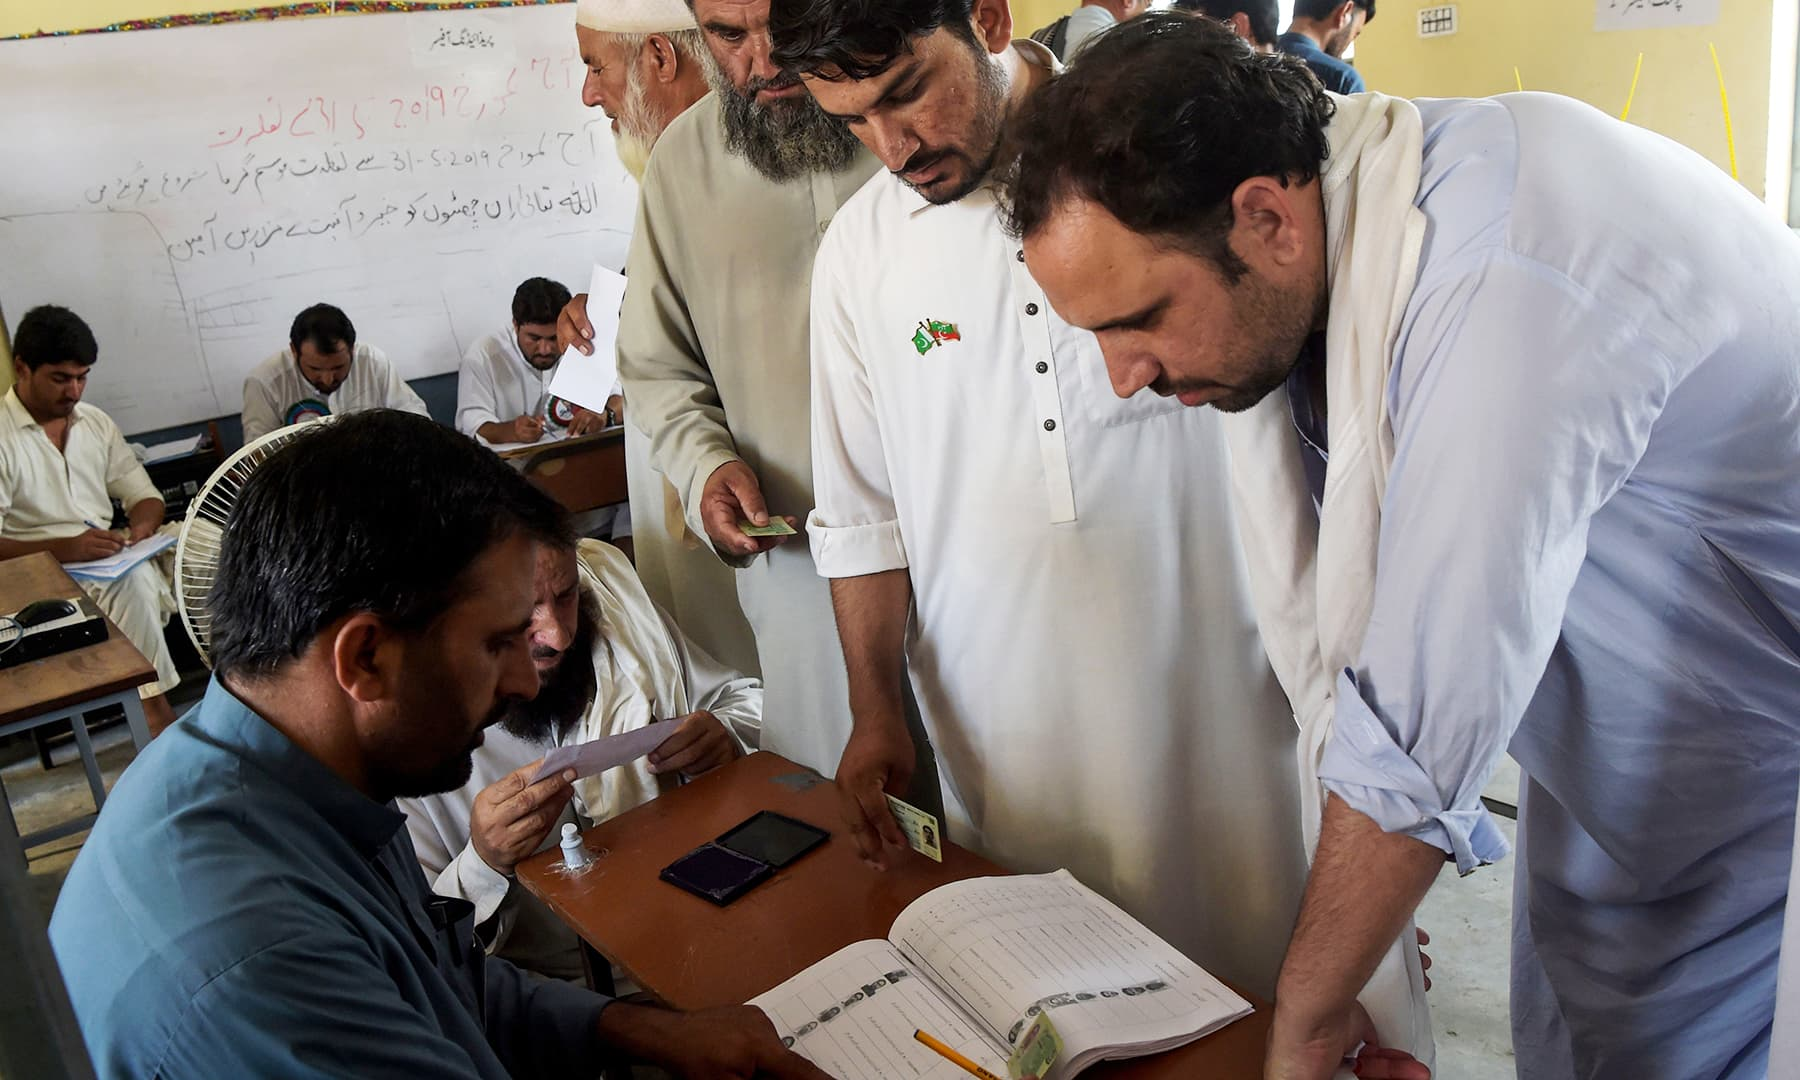 Tribesmen interact with an election official in a polling station for the first provincial elections in Jamrud. — AFP